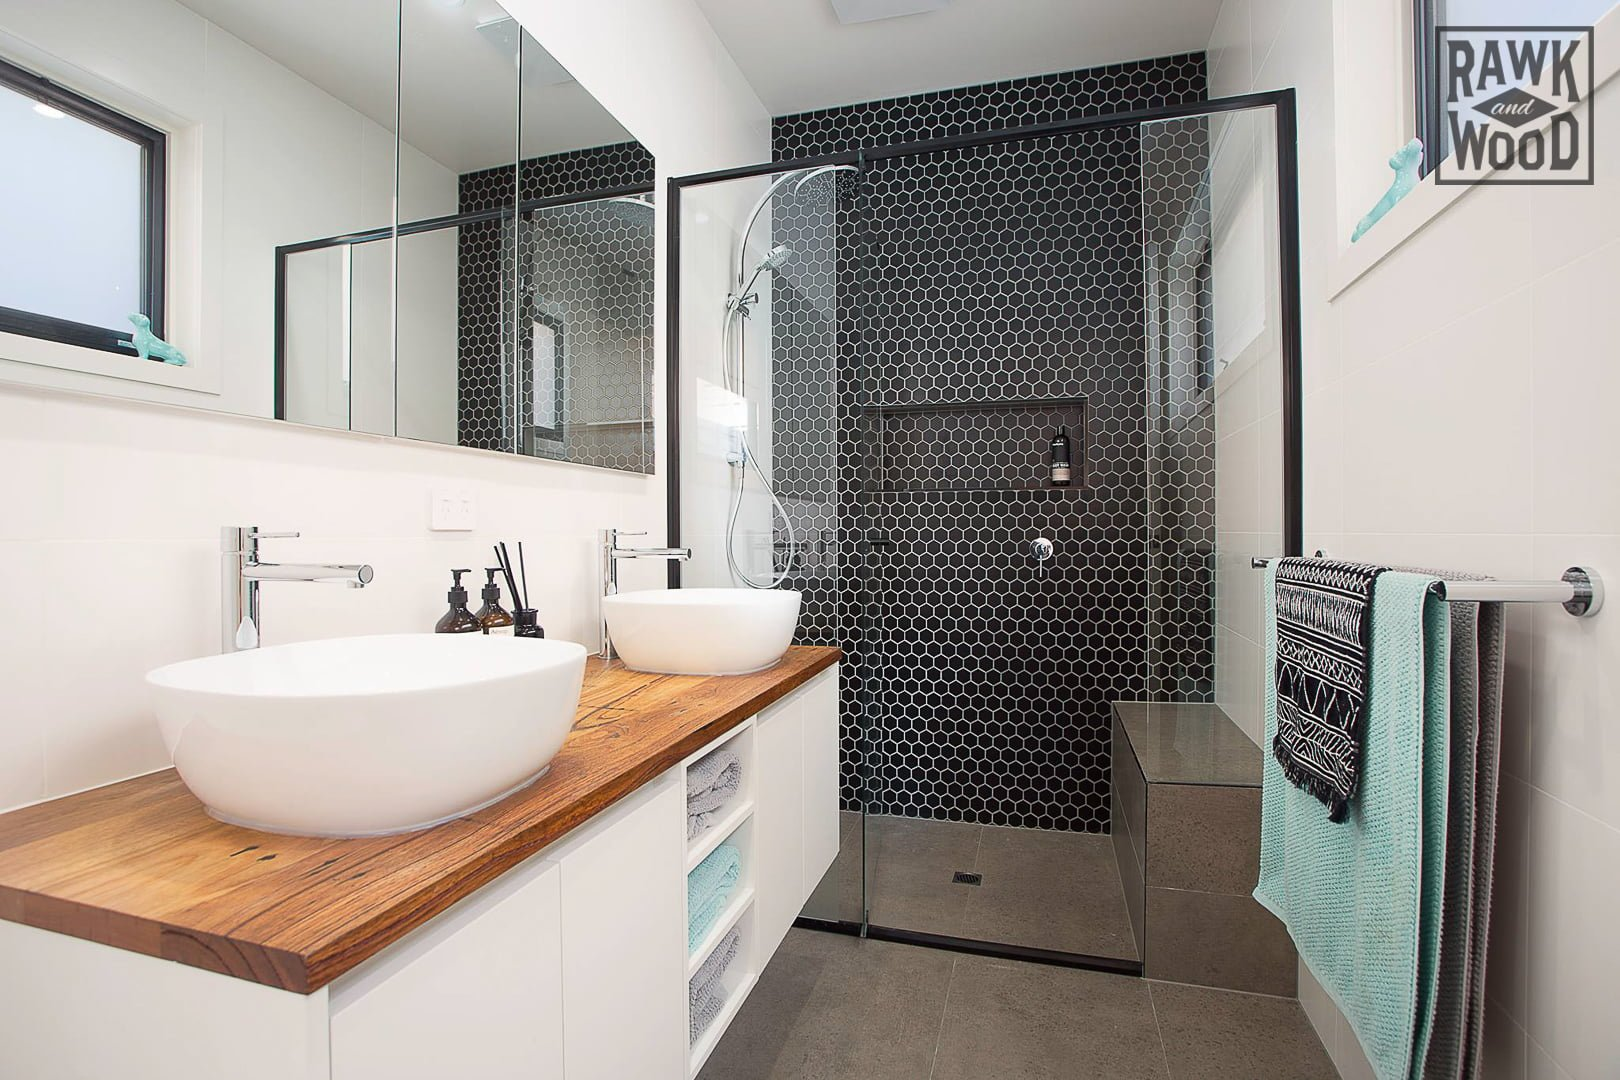 recycled-timber-bathroom-vanity-benchtops, made in Melbourne by Rawk and Wood